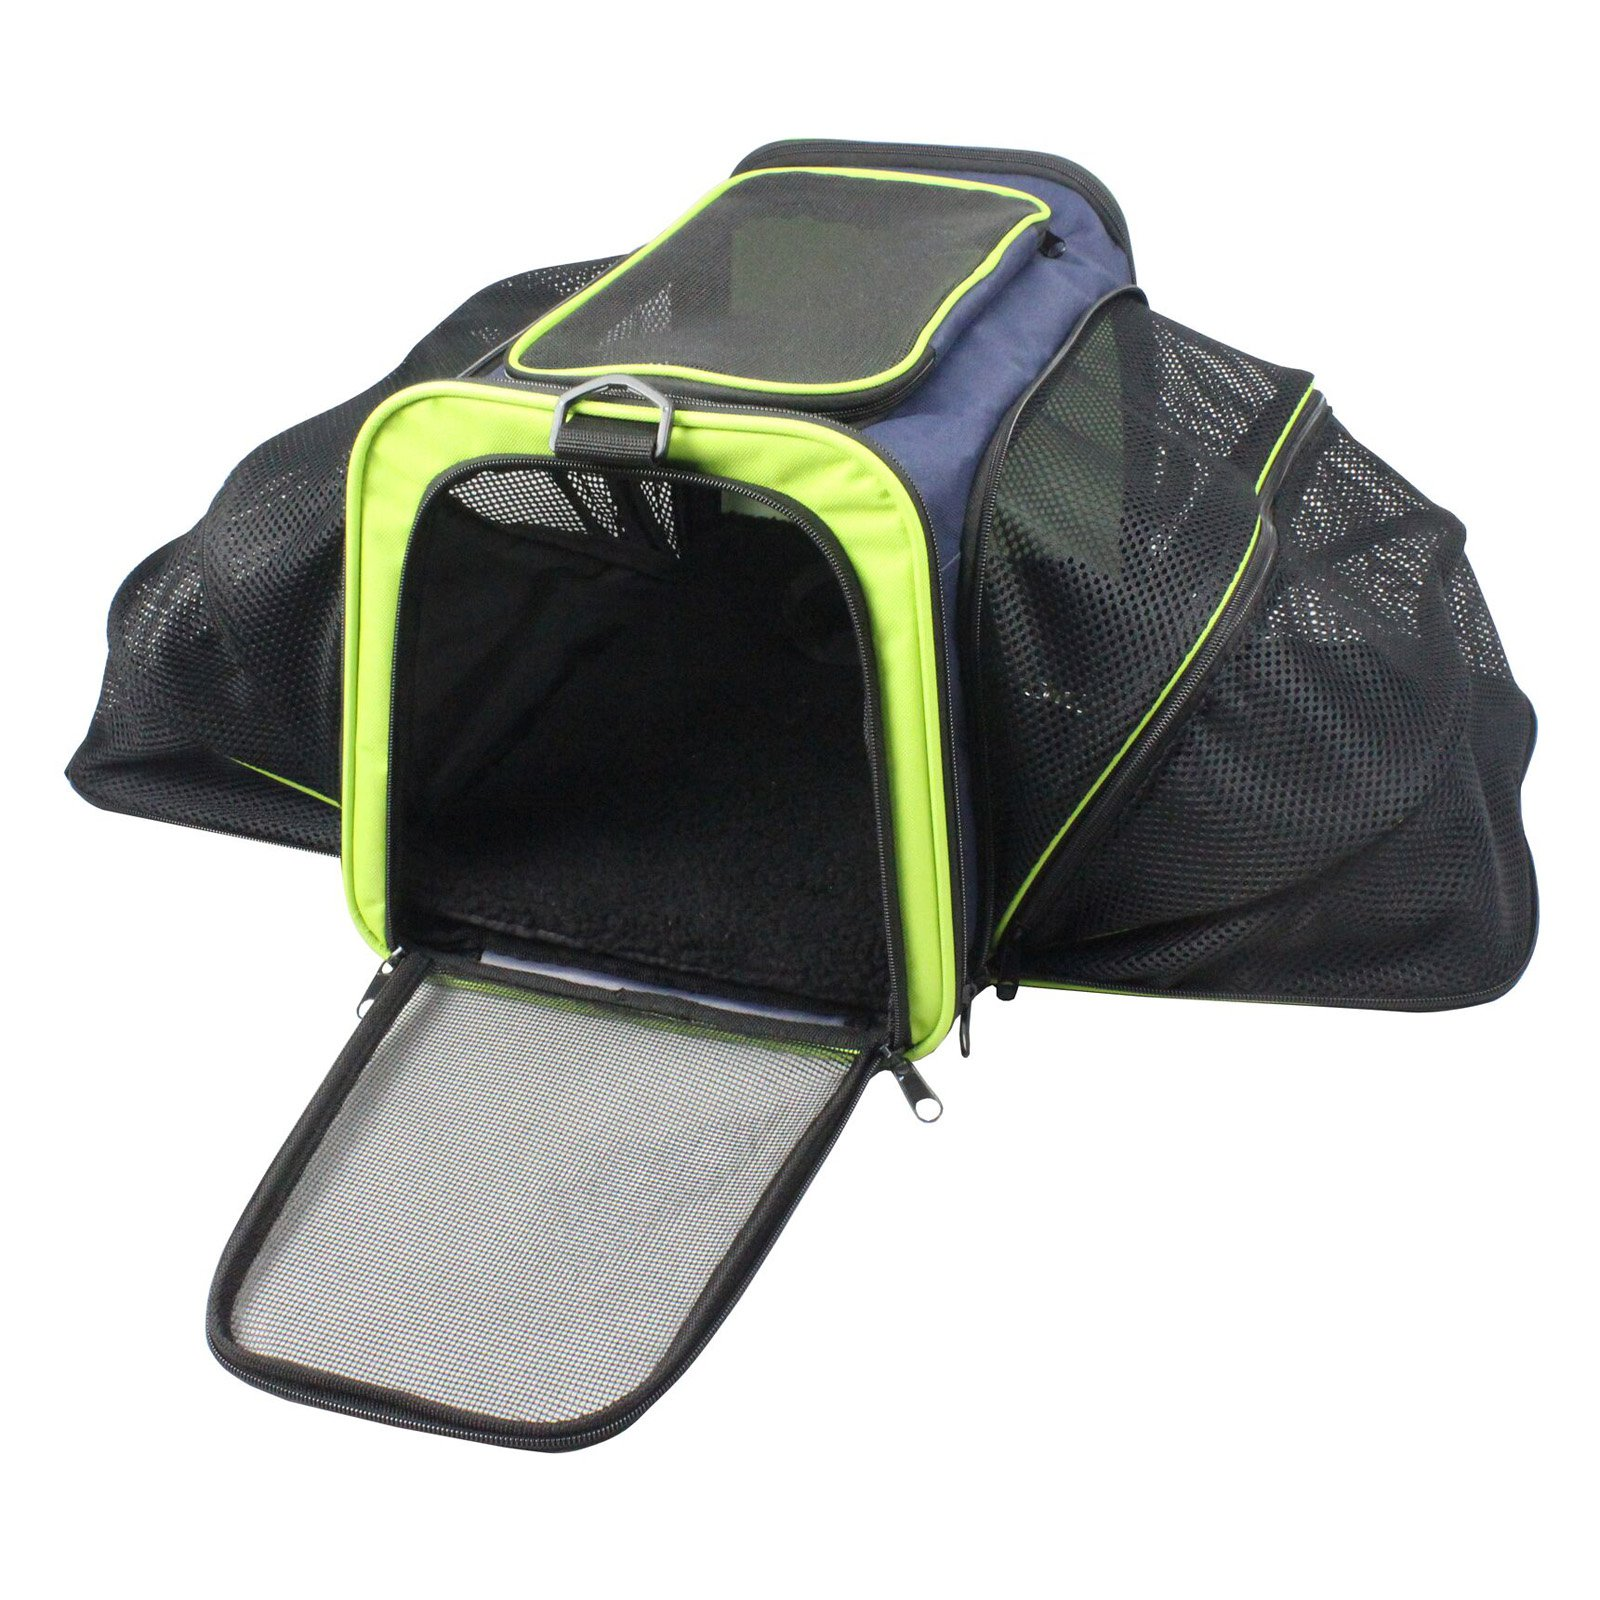 Pet Life Roomeo Collapsible Dog Carrier